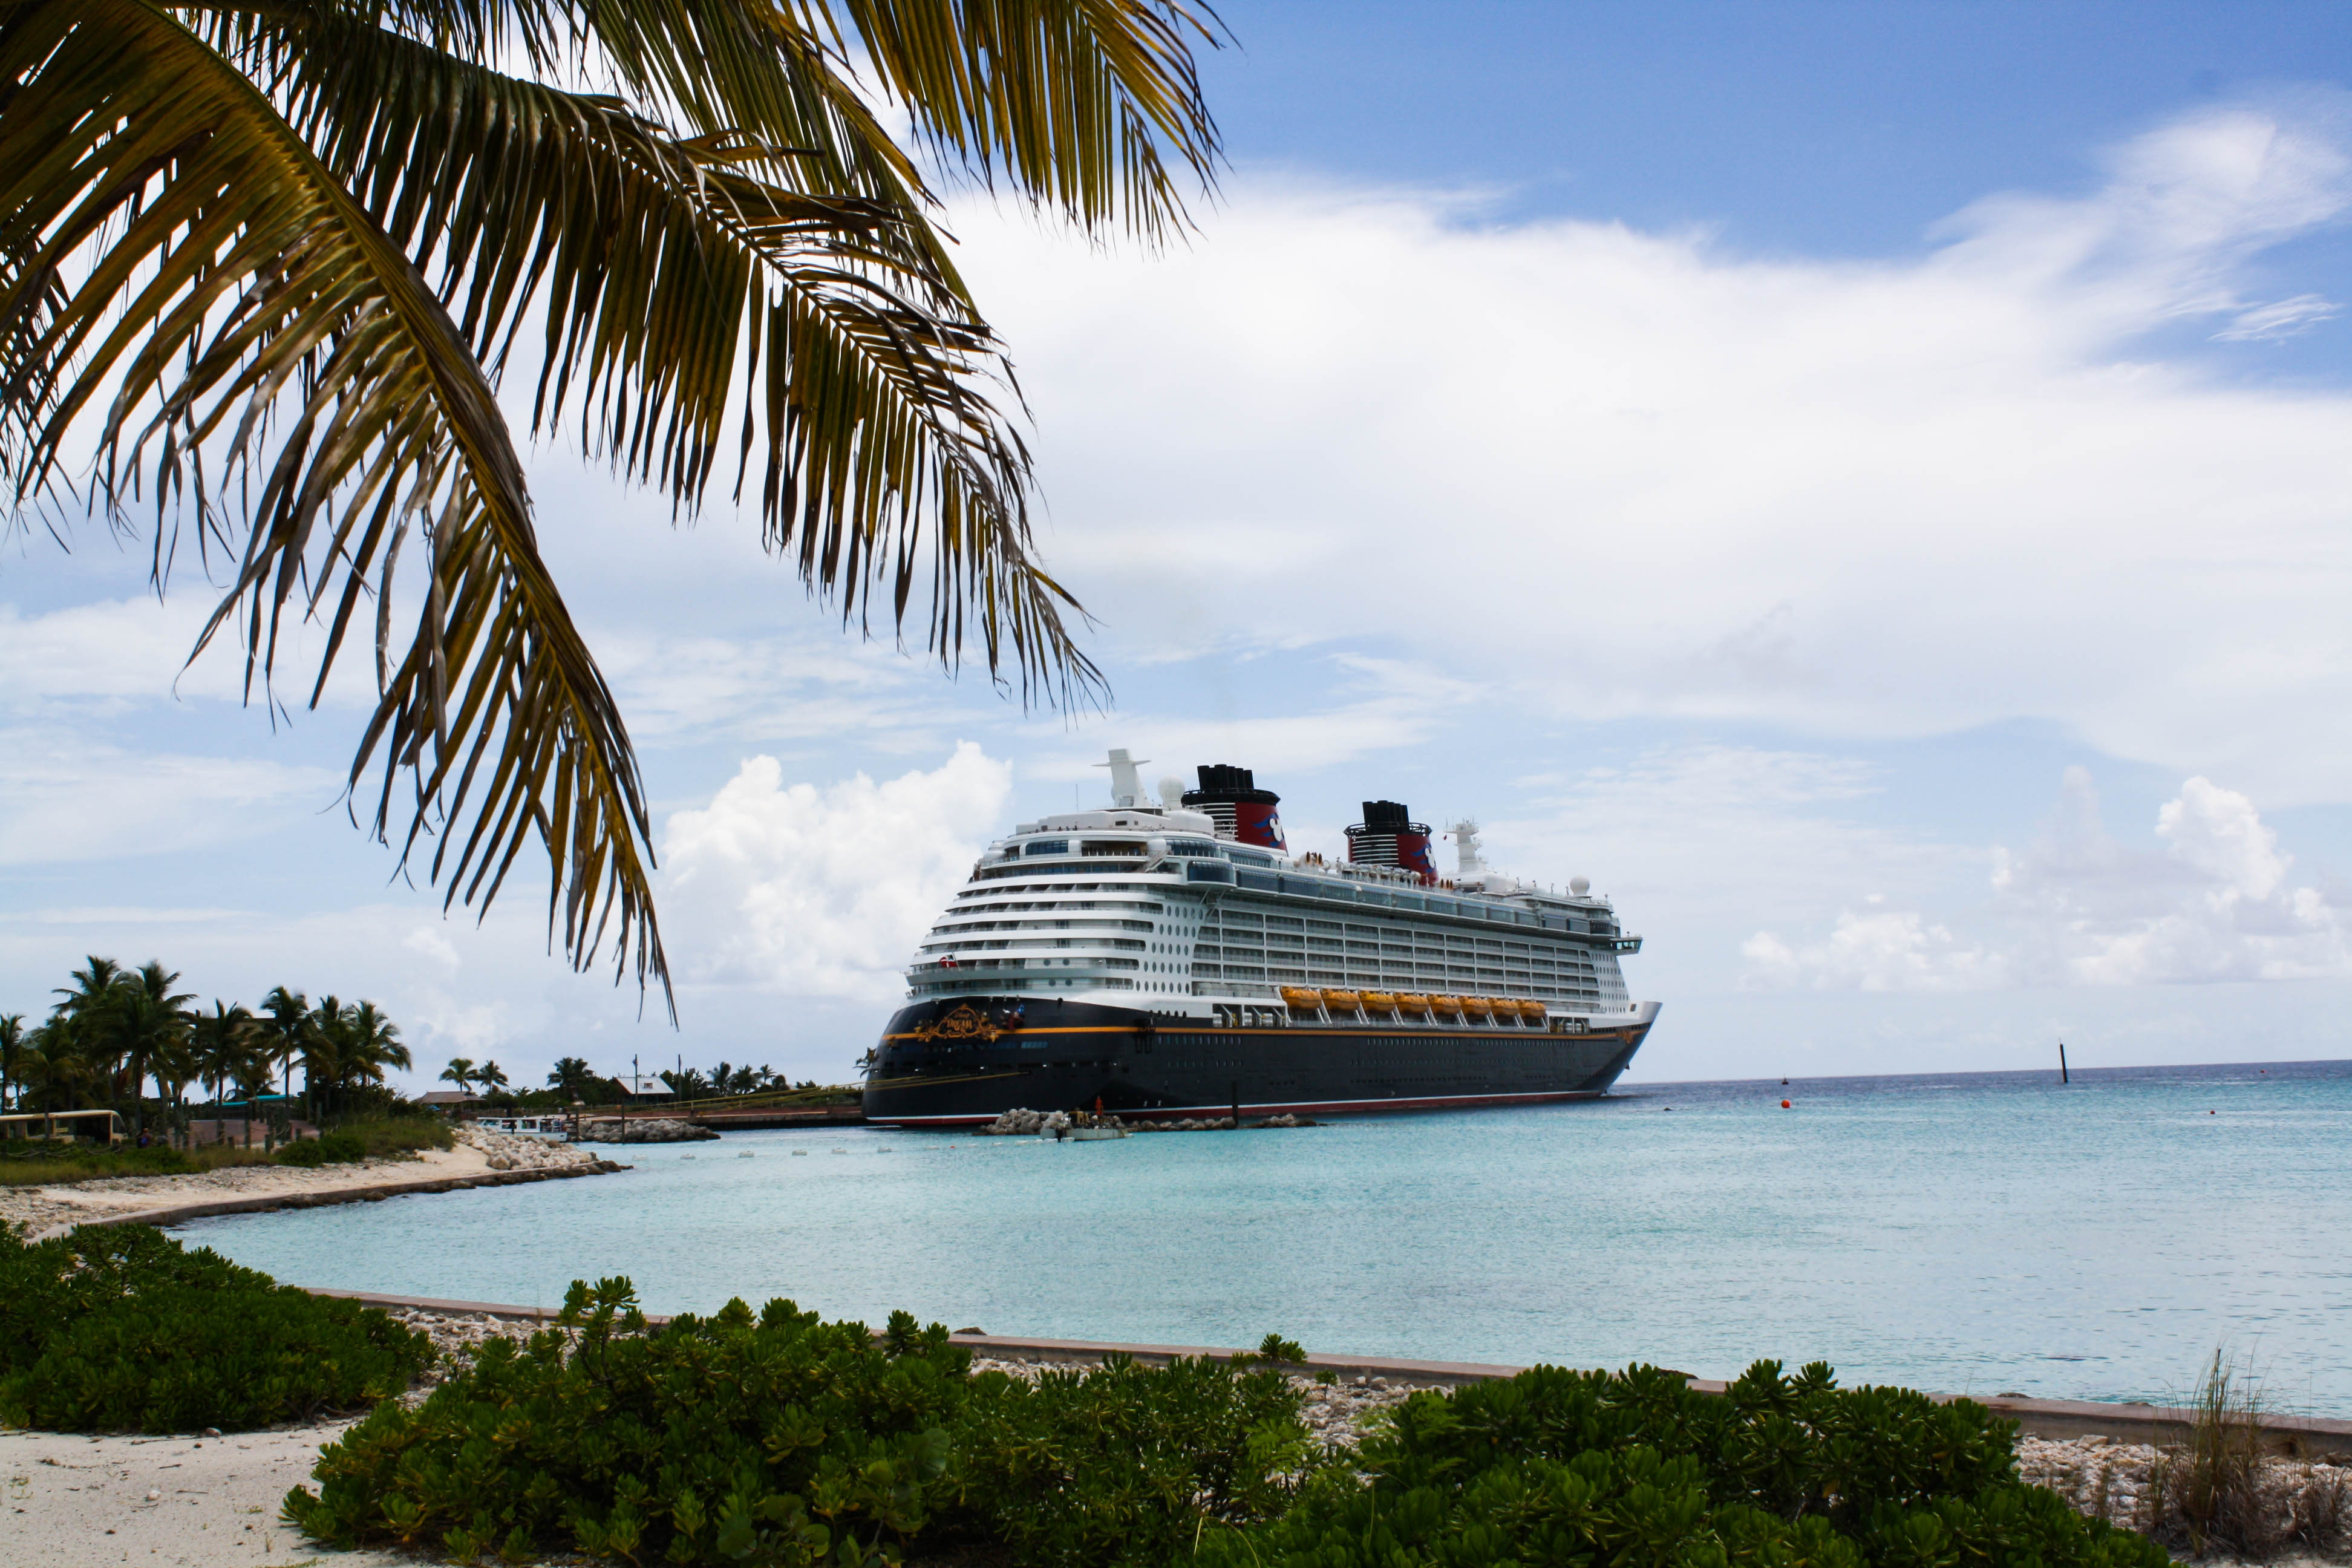 Disney Cruise Line - the Good, the Bad, and the Ugly ...